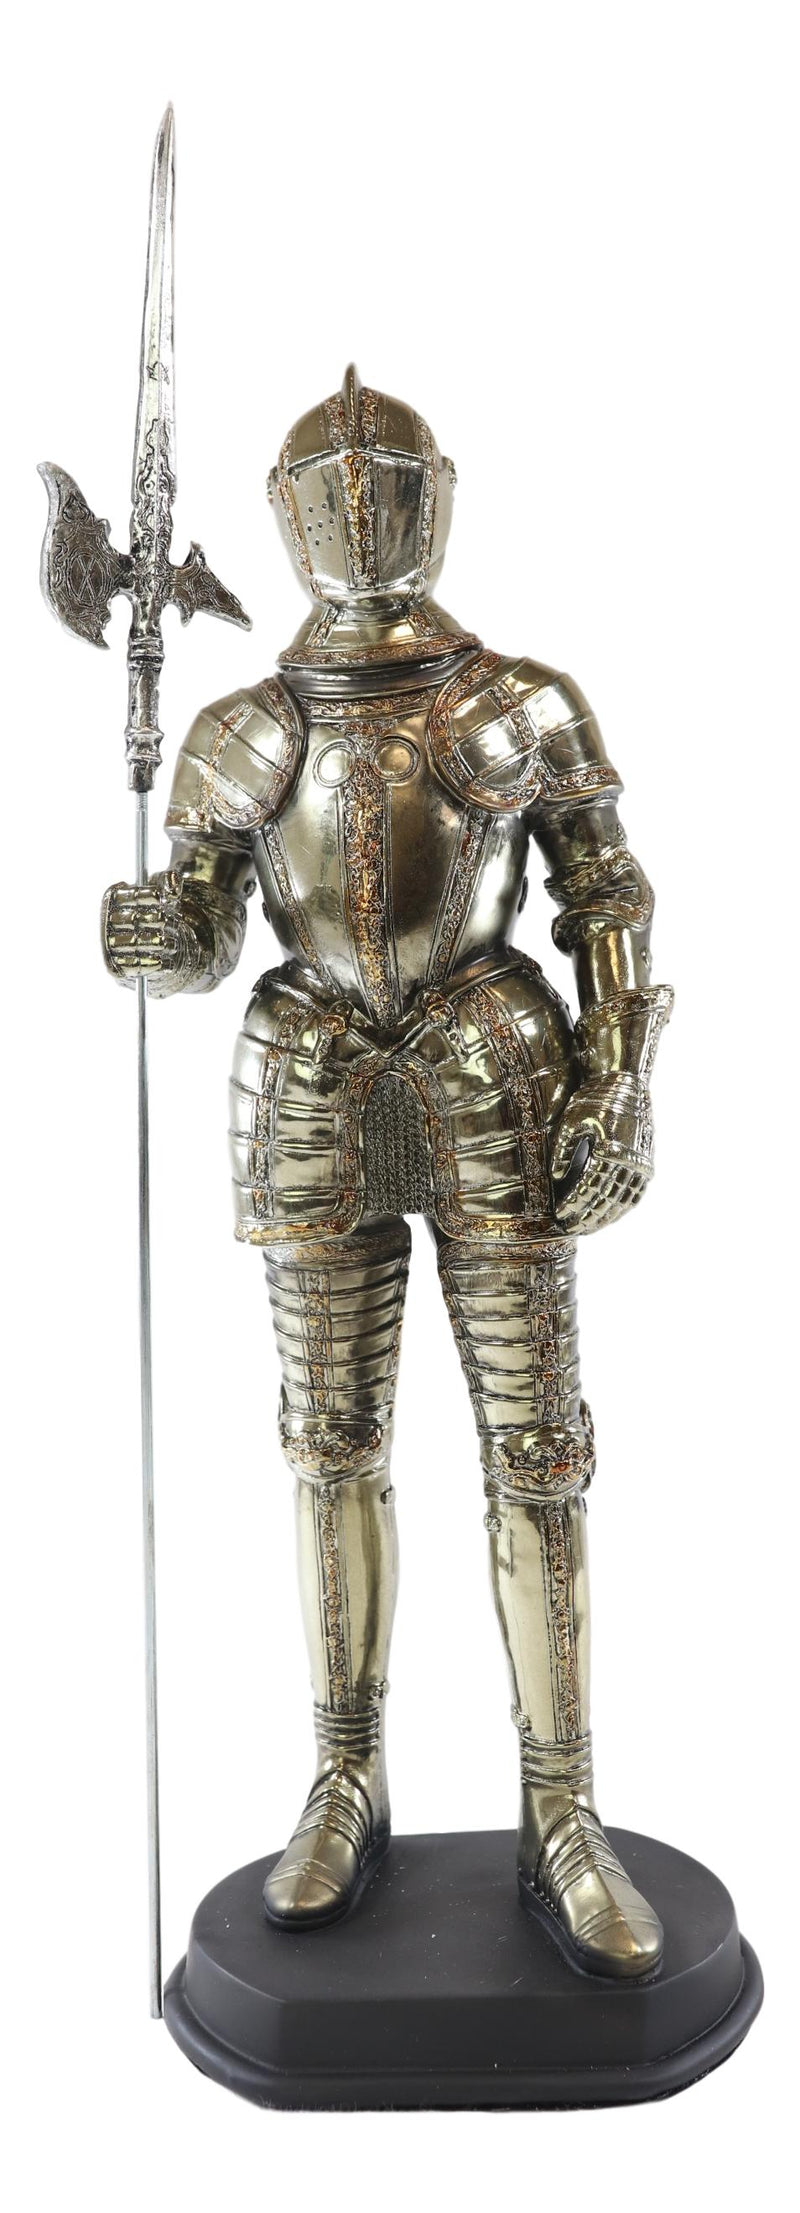 Medieval Fleur De Lis French Halberdier Pikeman Knight In Suit Of Armor Statue